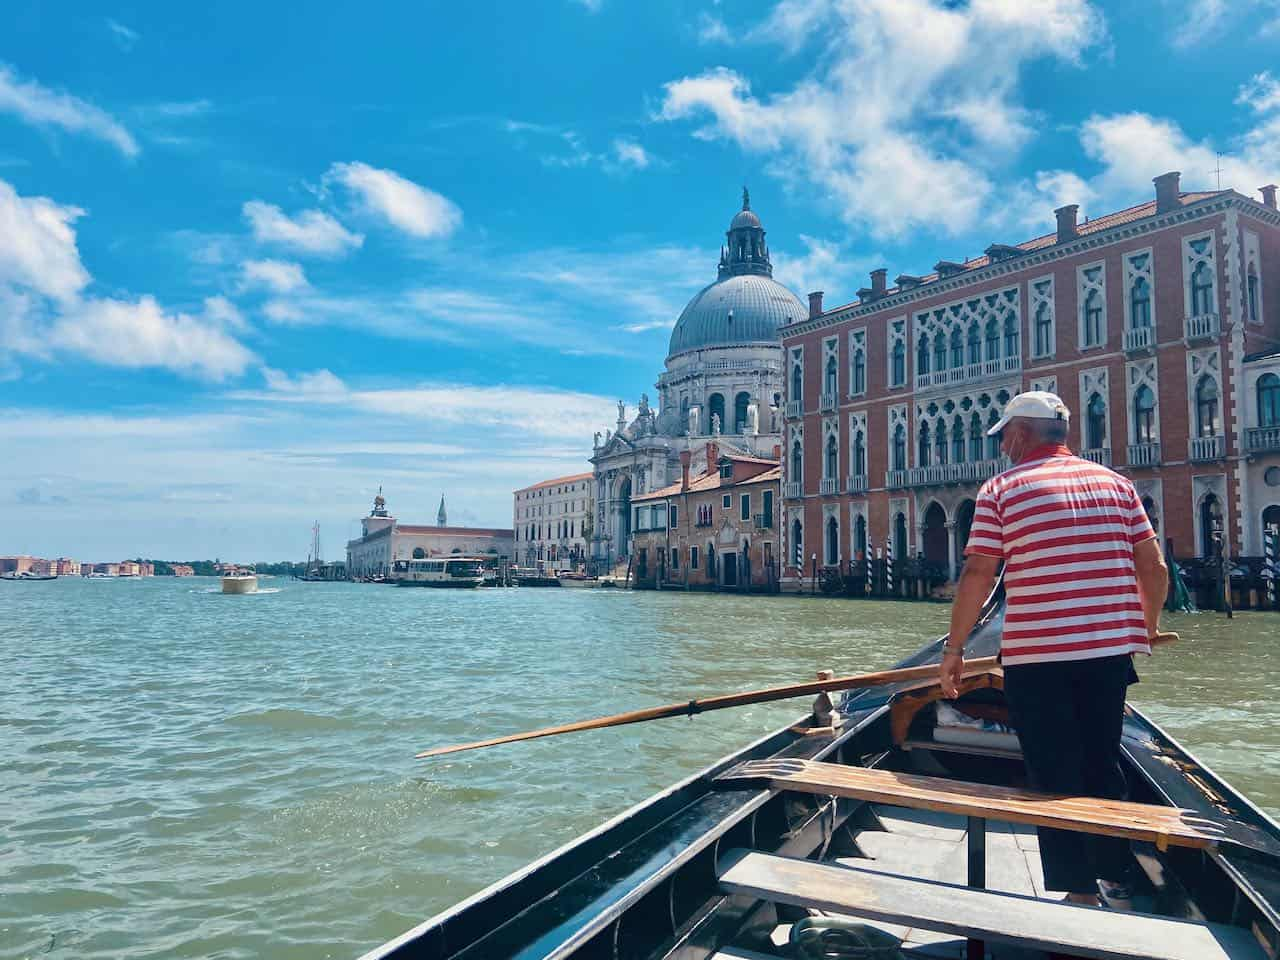 Views of Venice from traghetto